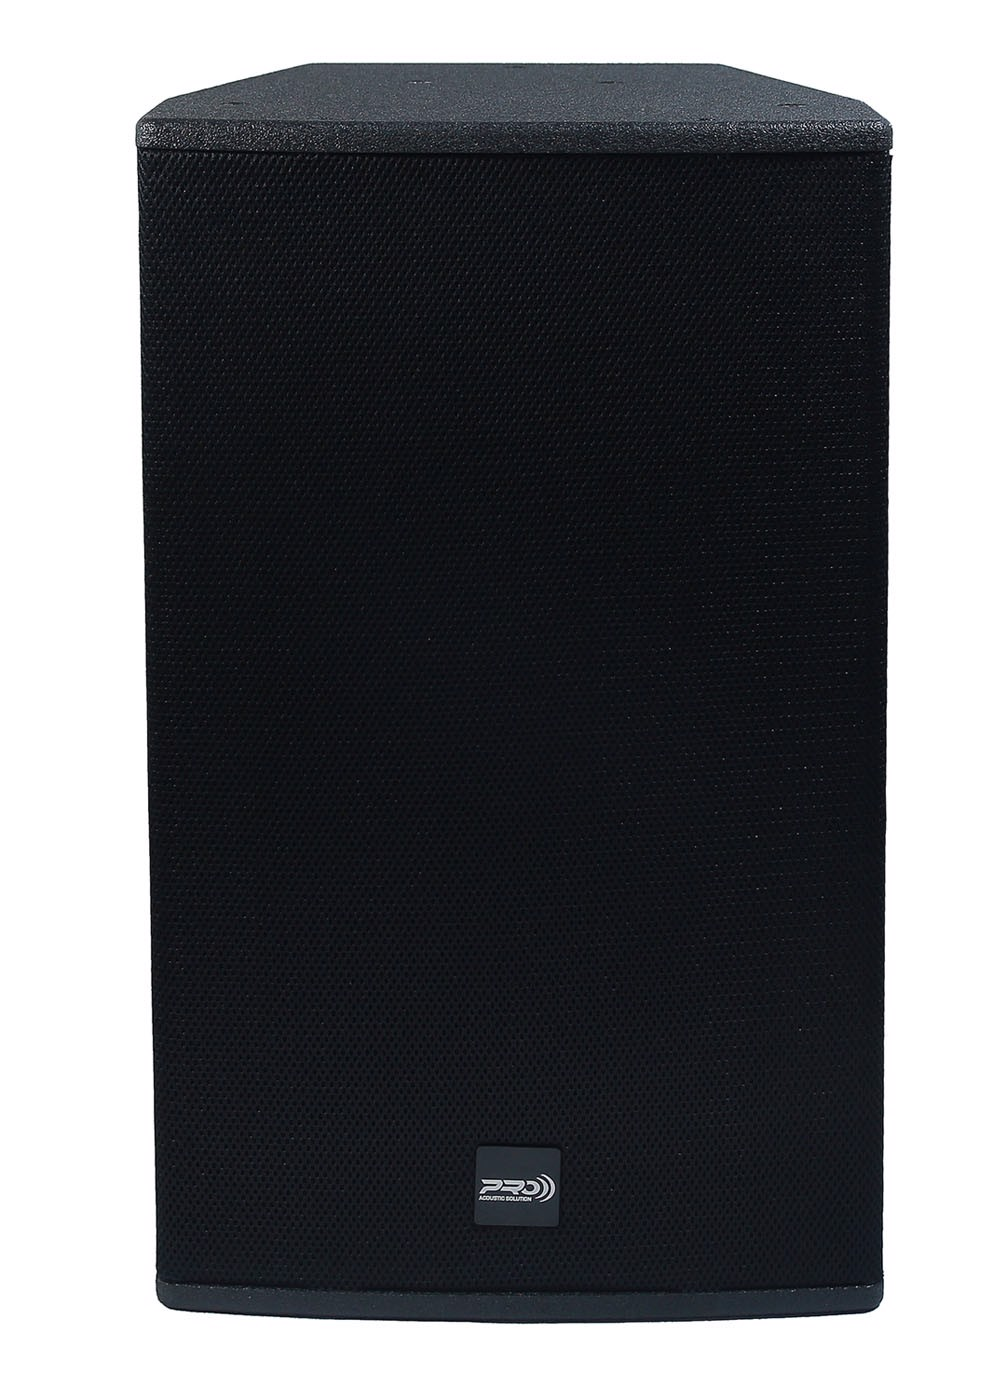 LOA PRO ACOUSTIC SOLUTION i-12